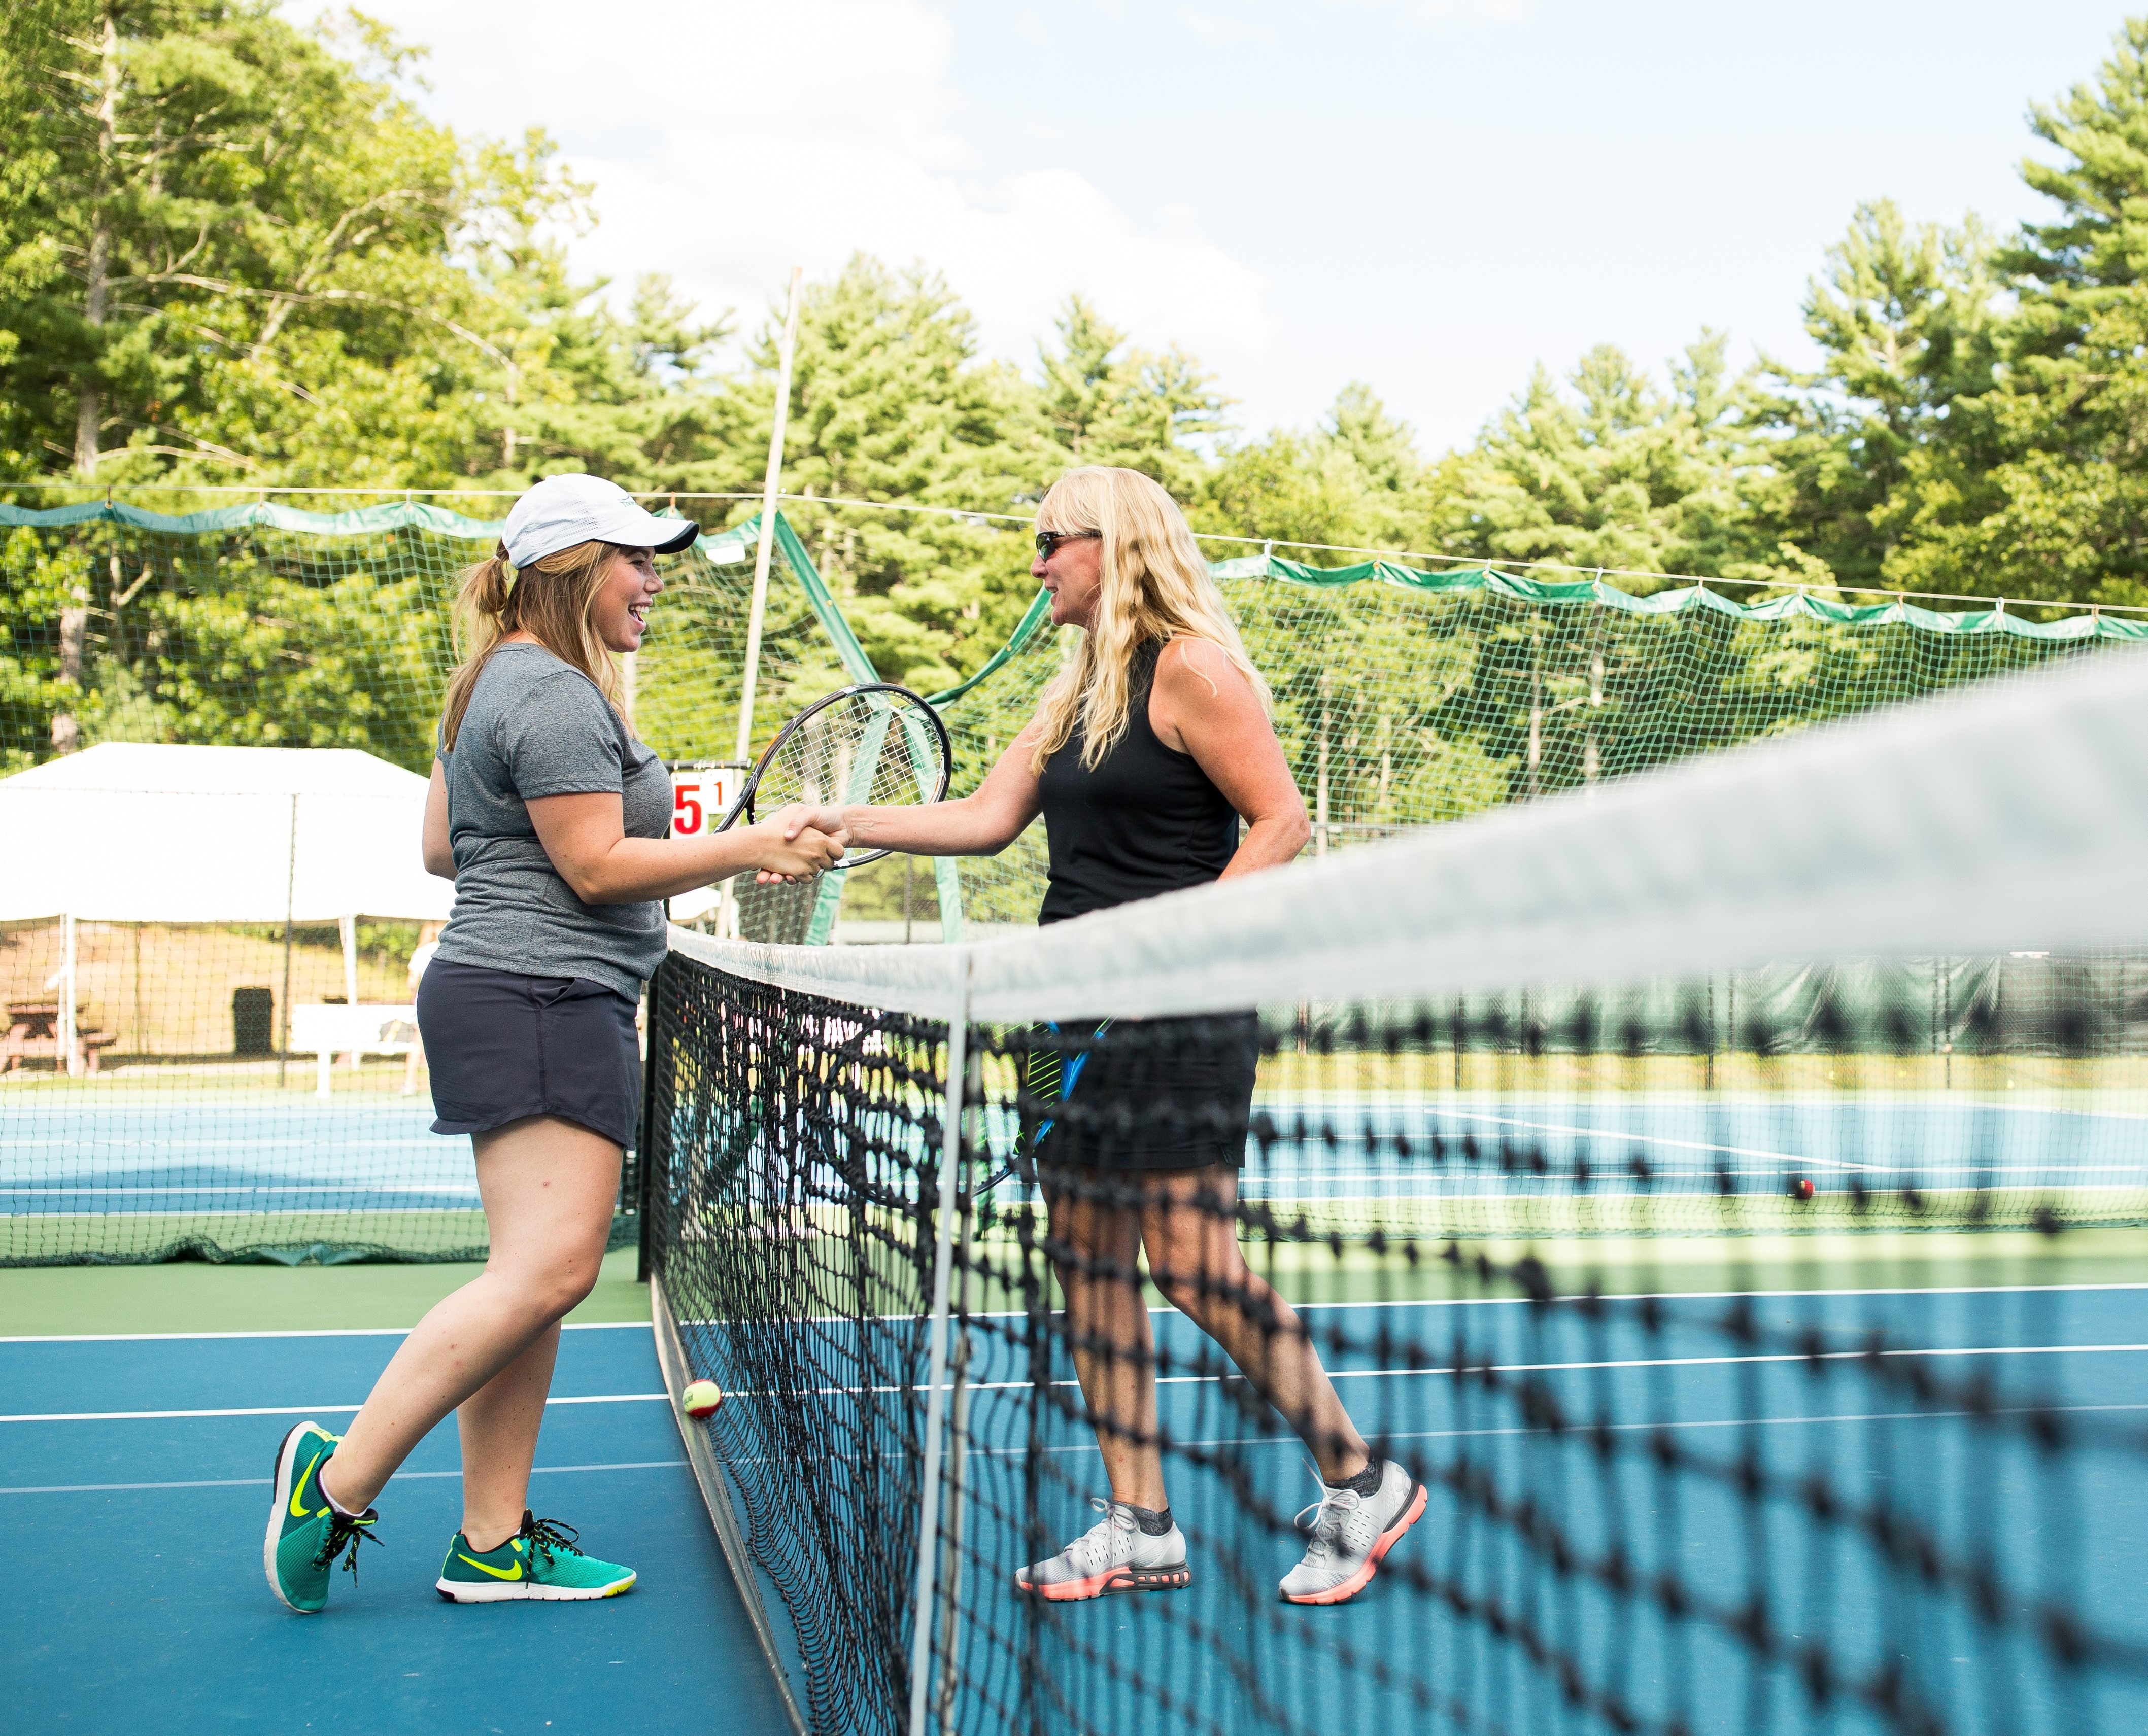 reputable site 9ae6c 94209 Haven t played in awhile, don t have current equipment but want to get back  into tennis in a fast and fun way  We will provide a complimentary player  ...